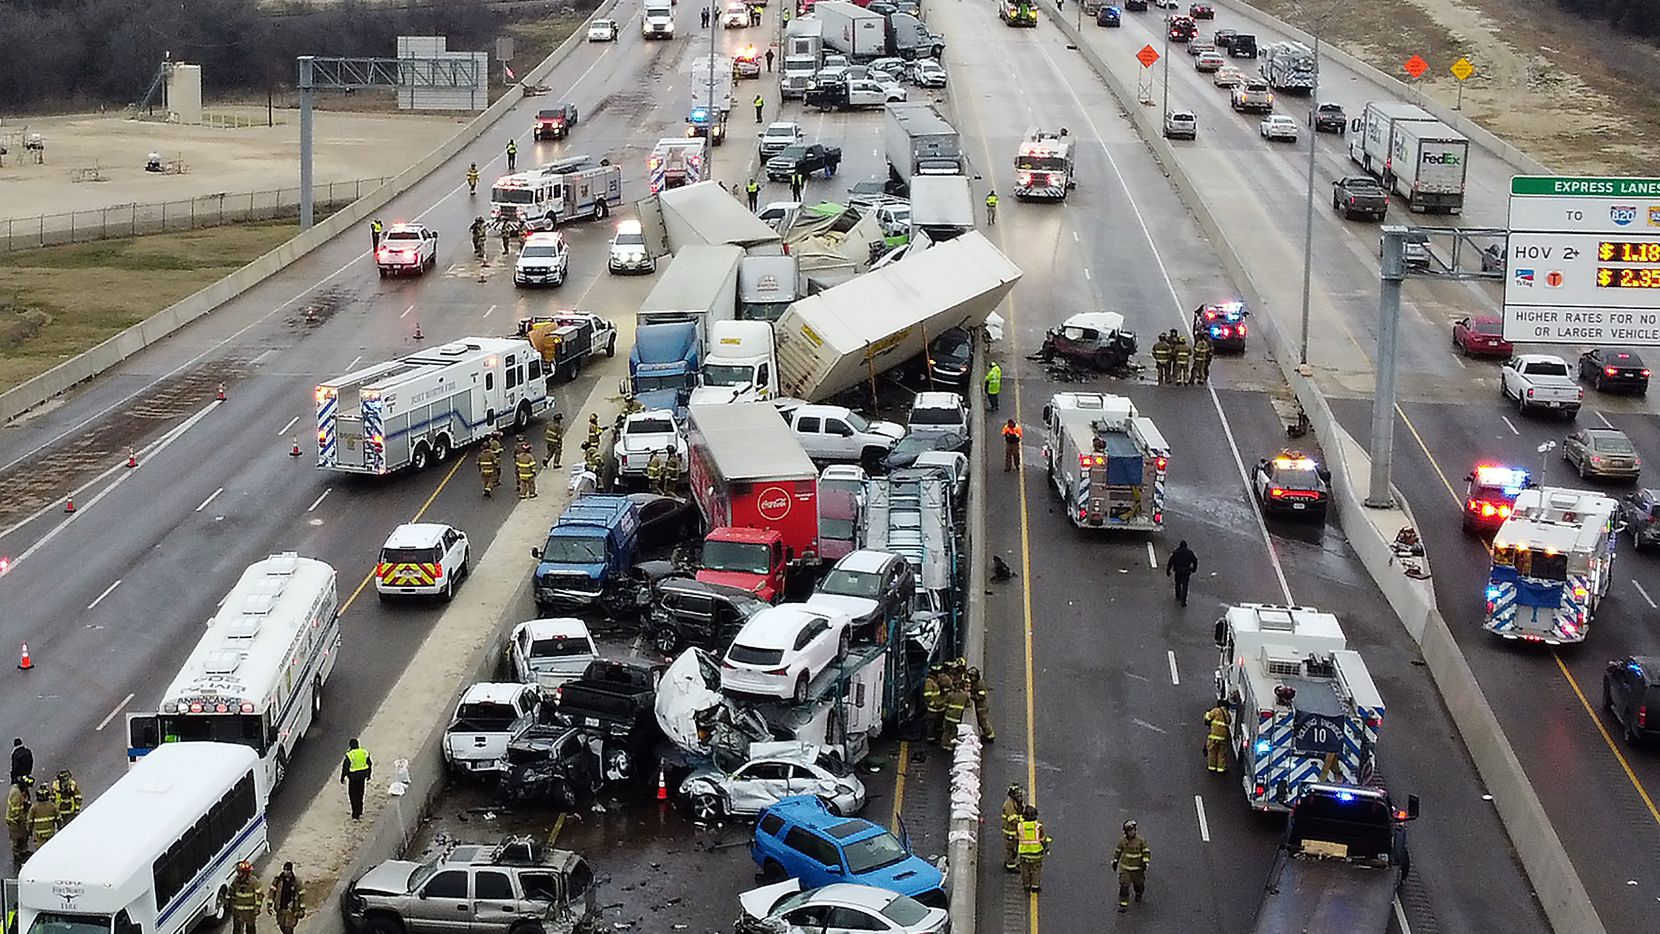 At least six people were killed in a major crash on Interstate 35W in Fort Worth on Thursday morning.